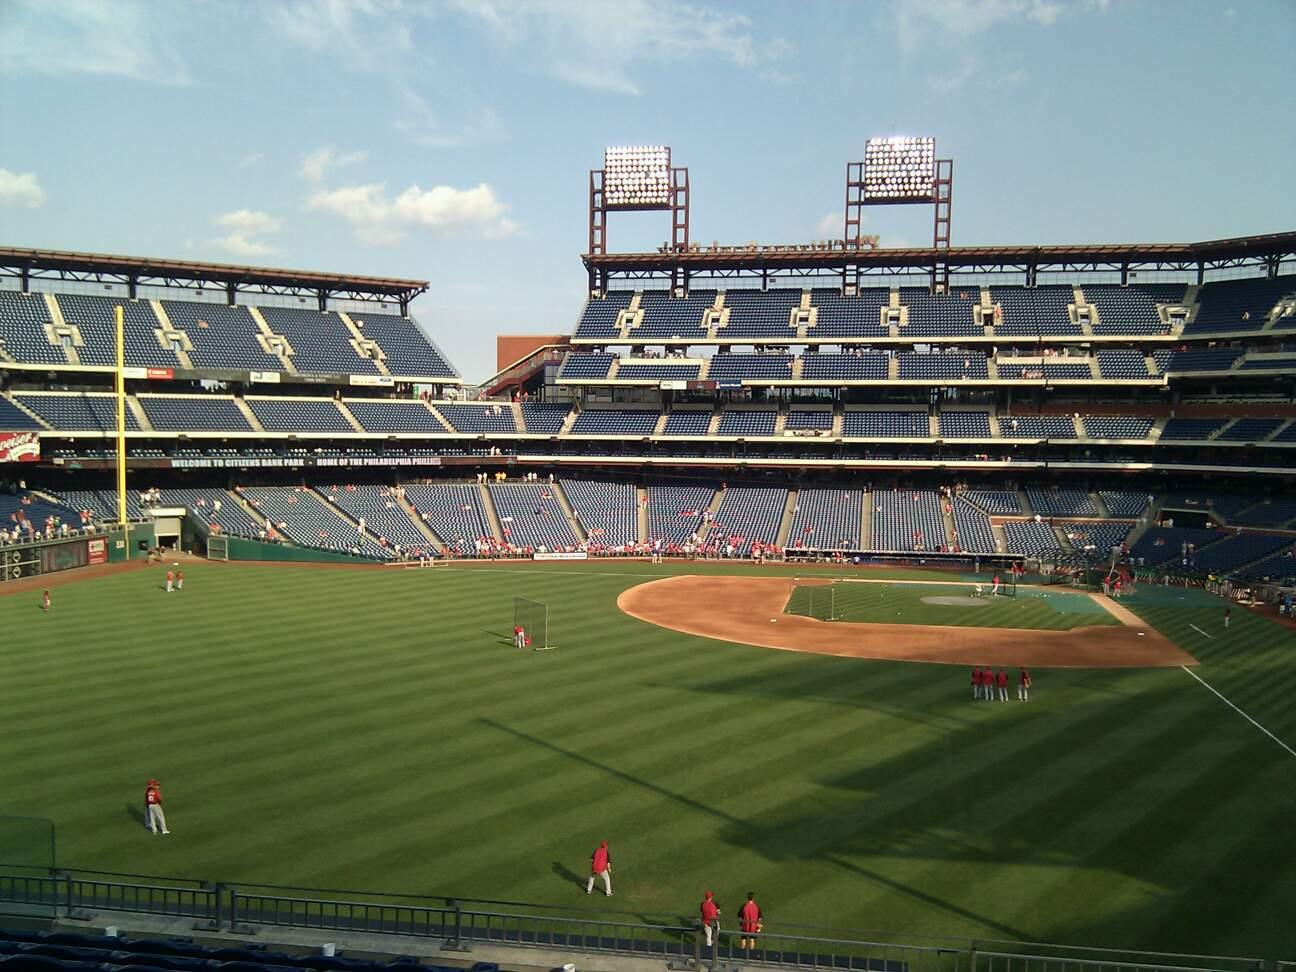 Citizens Bank Park Section 242 Row 9 Seat 12